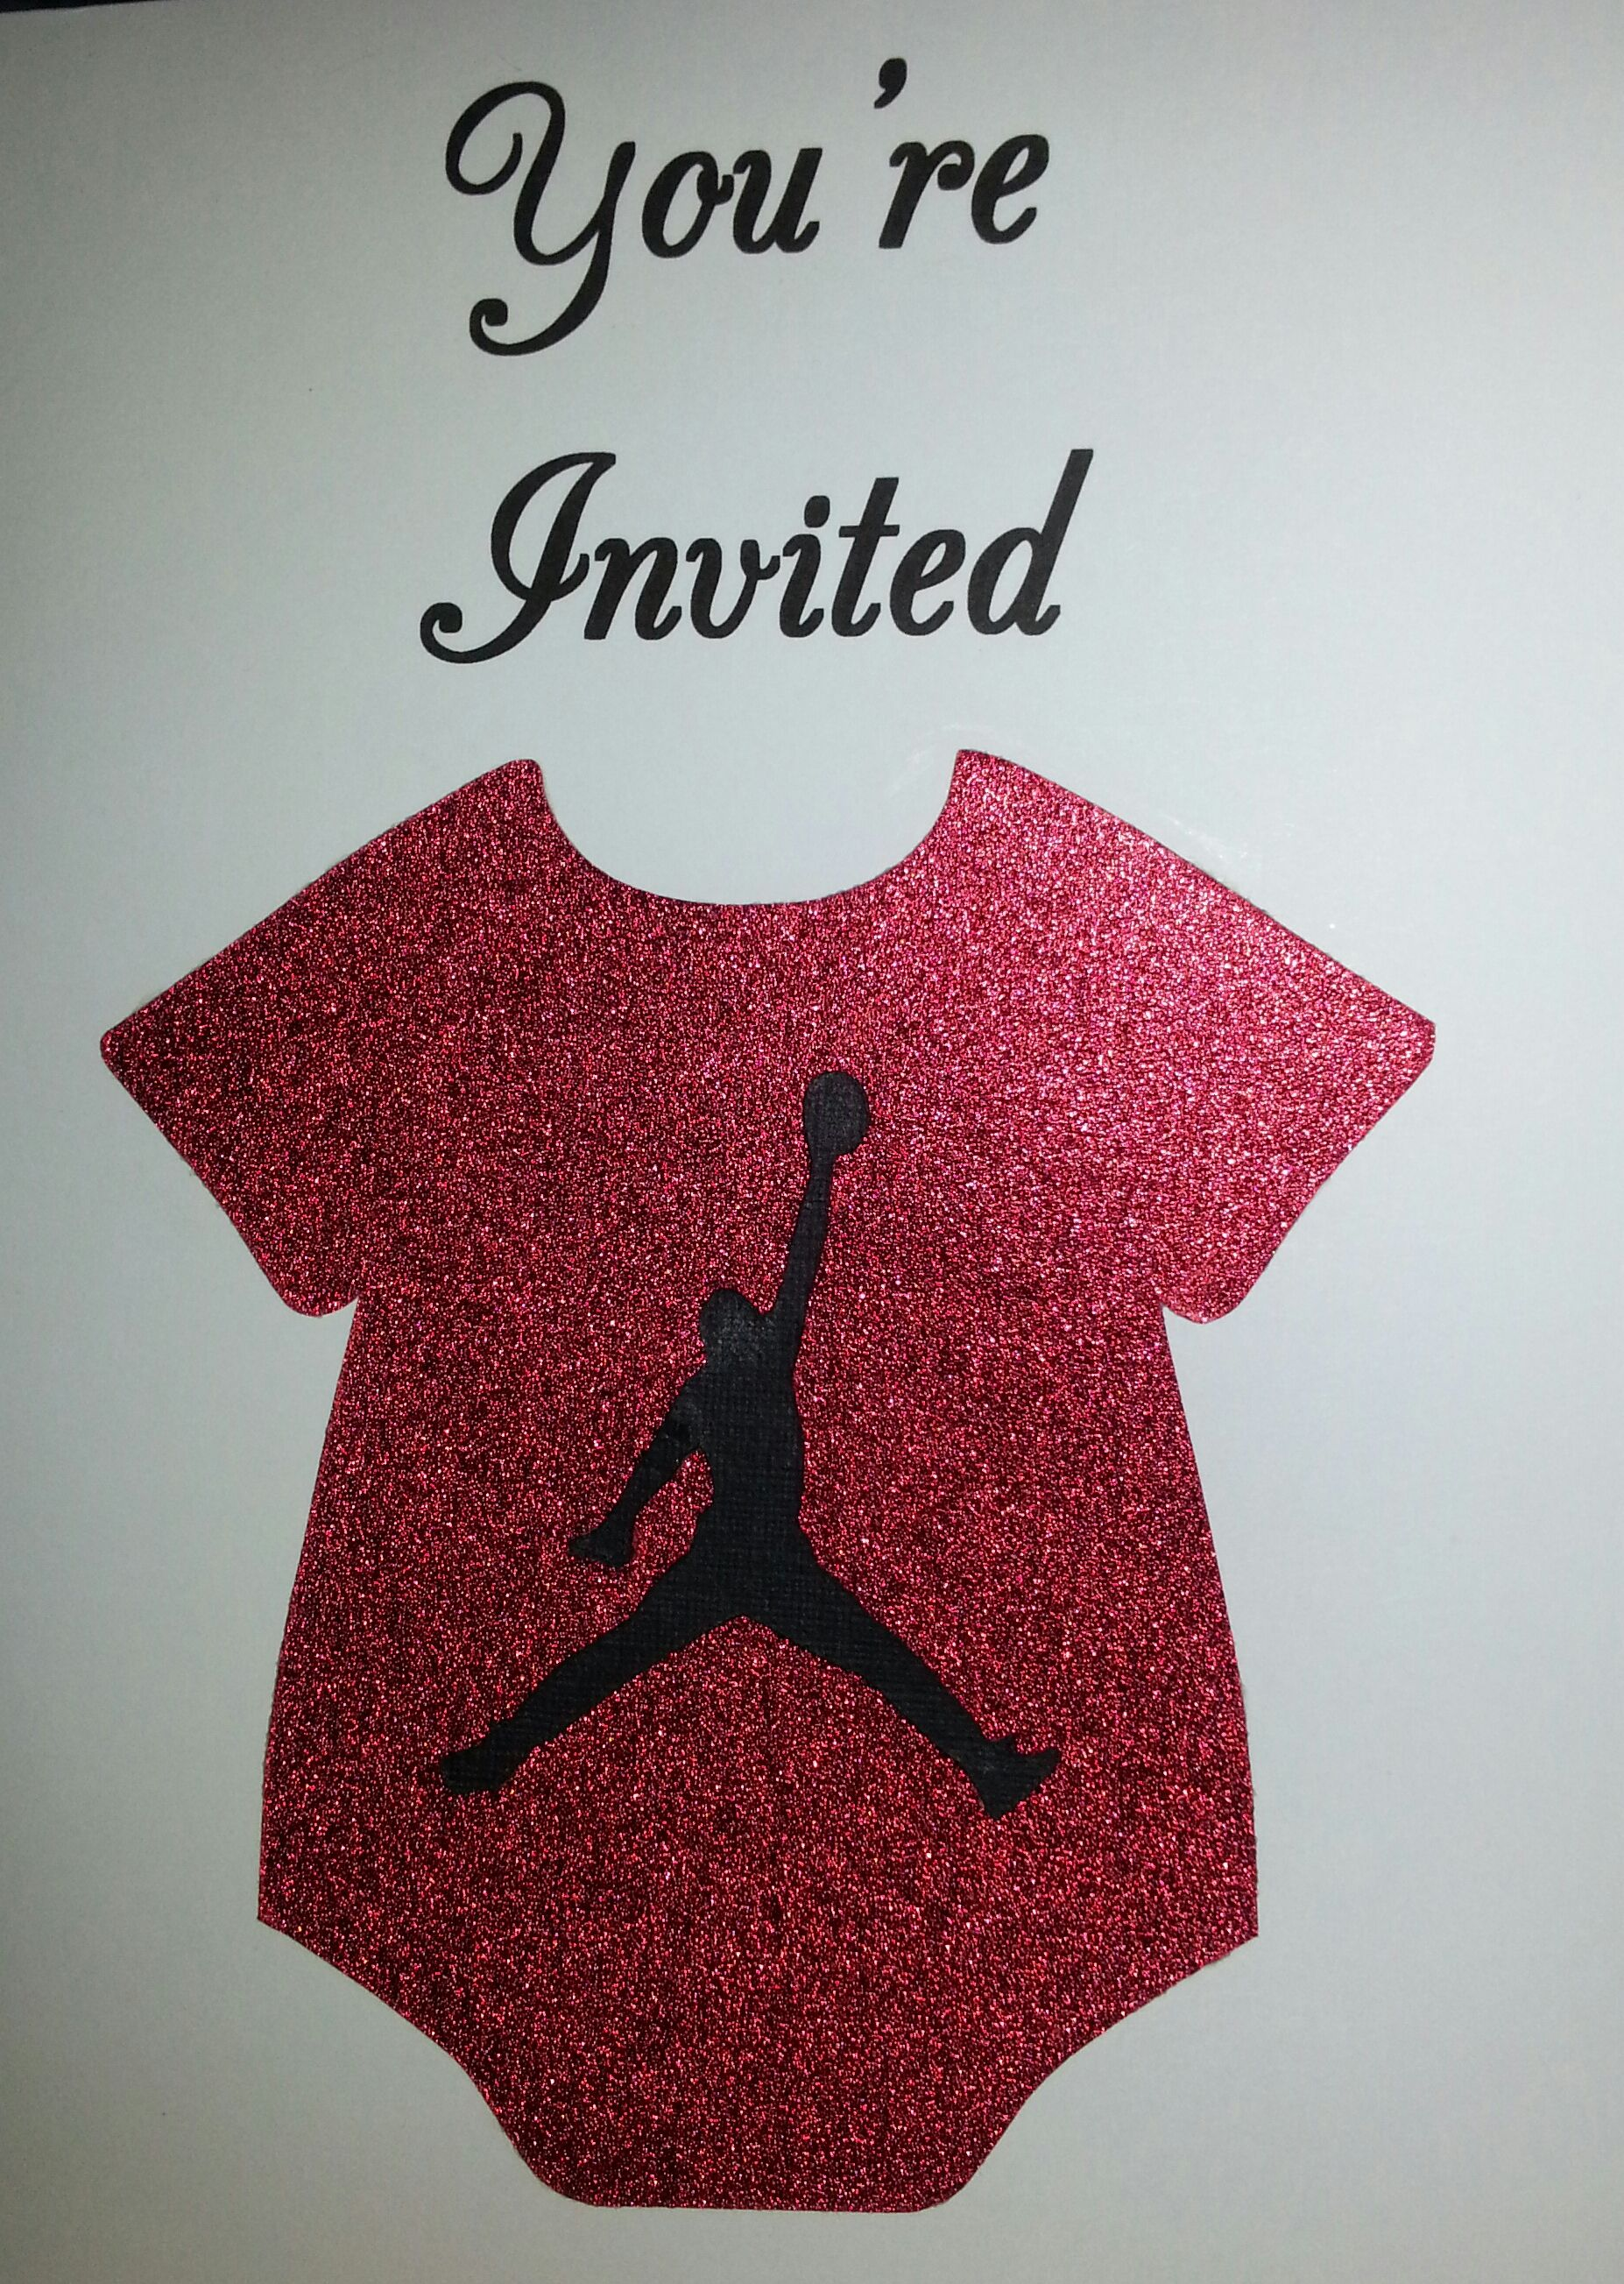 Find This Pin And More On Ashleyu0027s Jordan Inspired Baby Shower Theme By  Mstbynum.